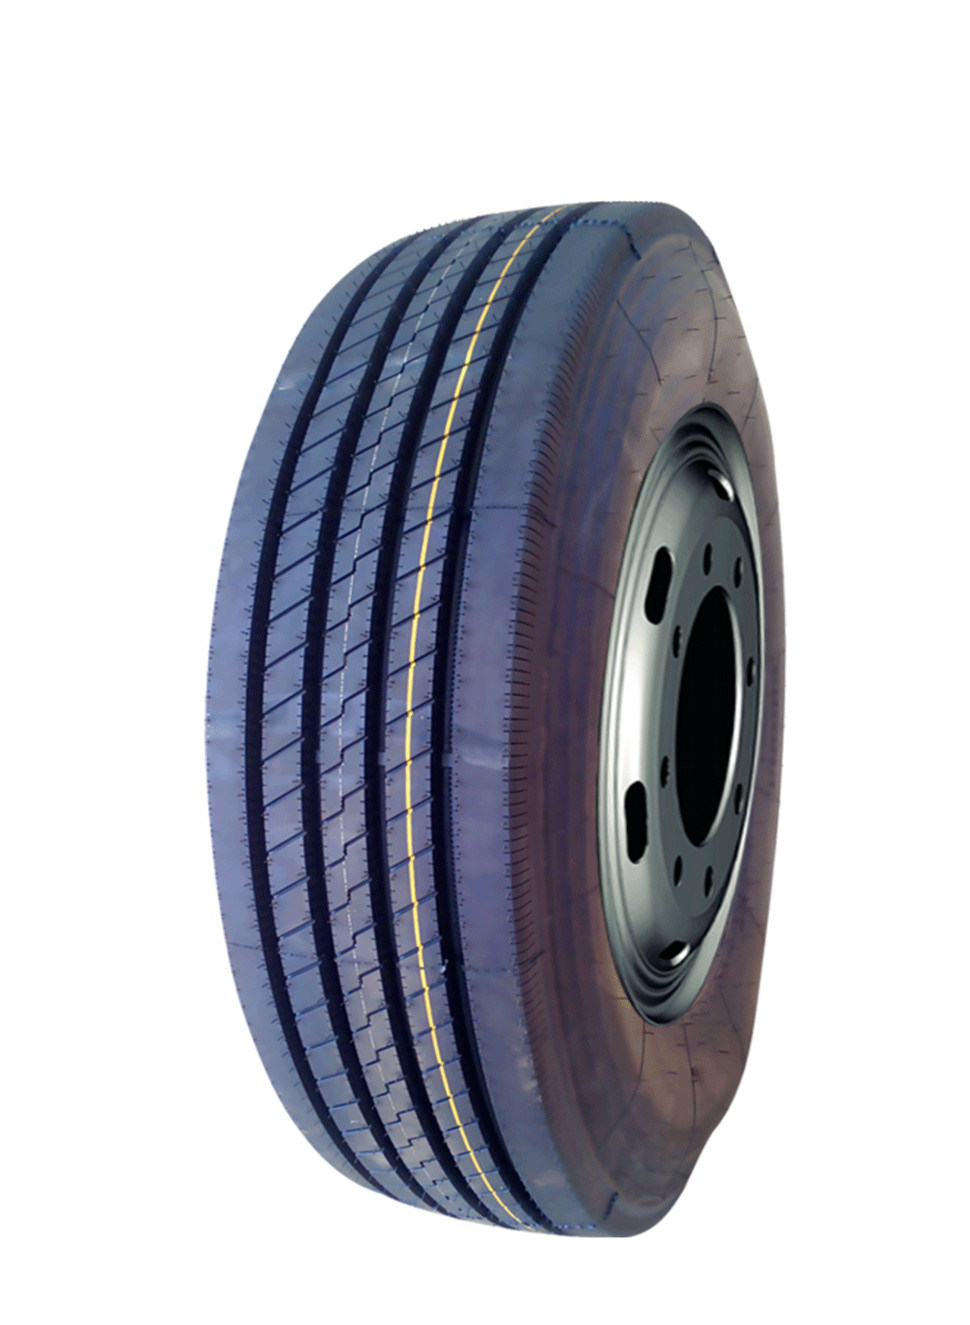 All Steel OTR Trailer Radial TBR Truck and Bus Tyre